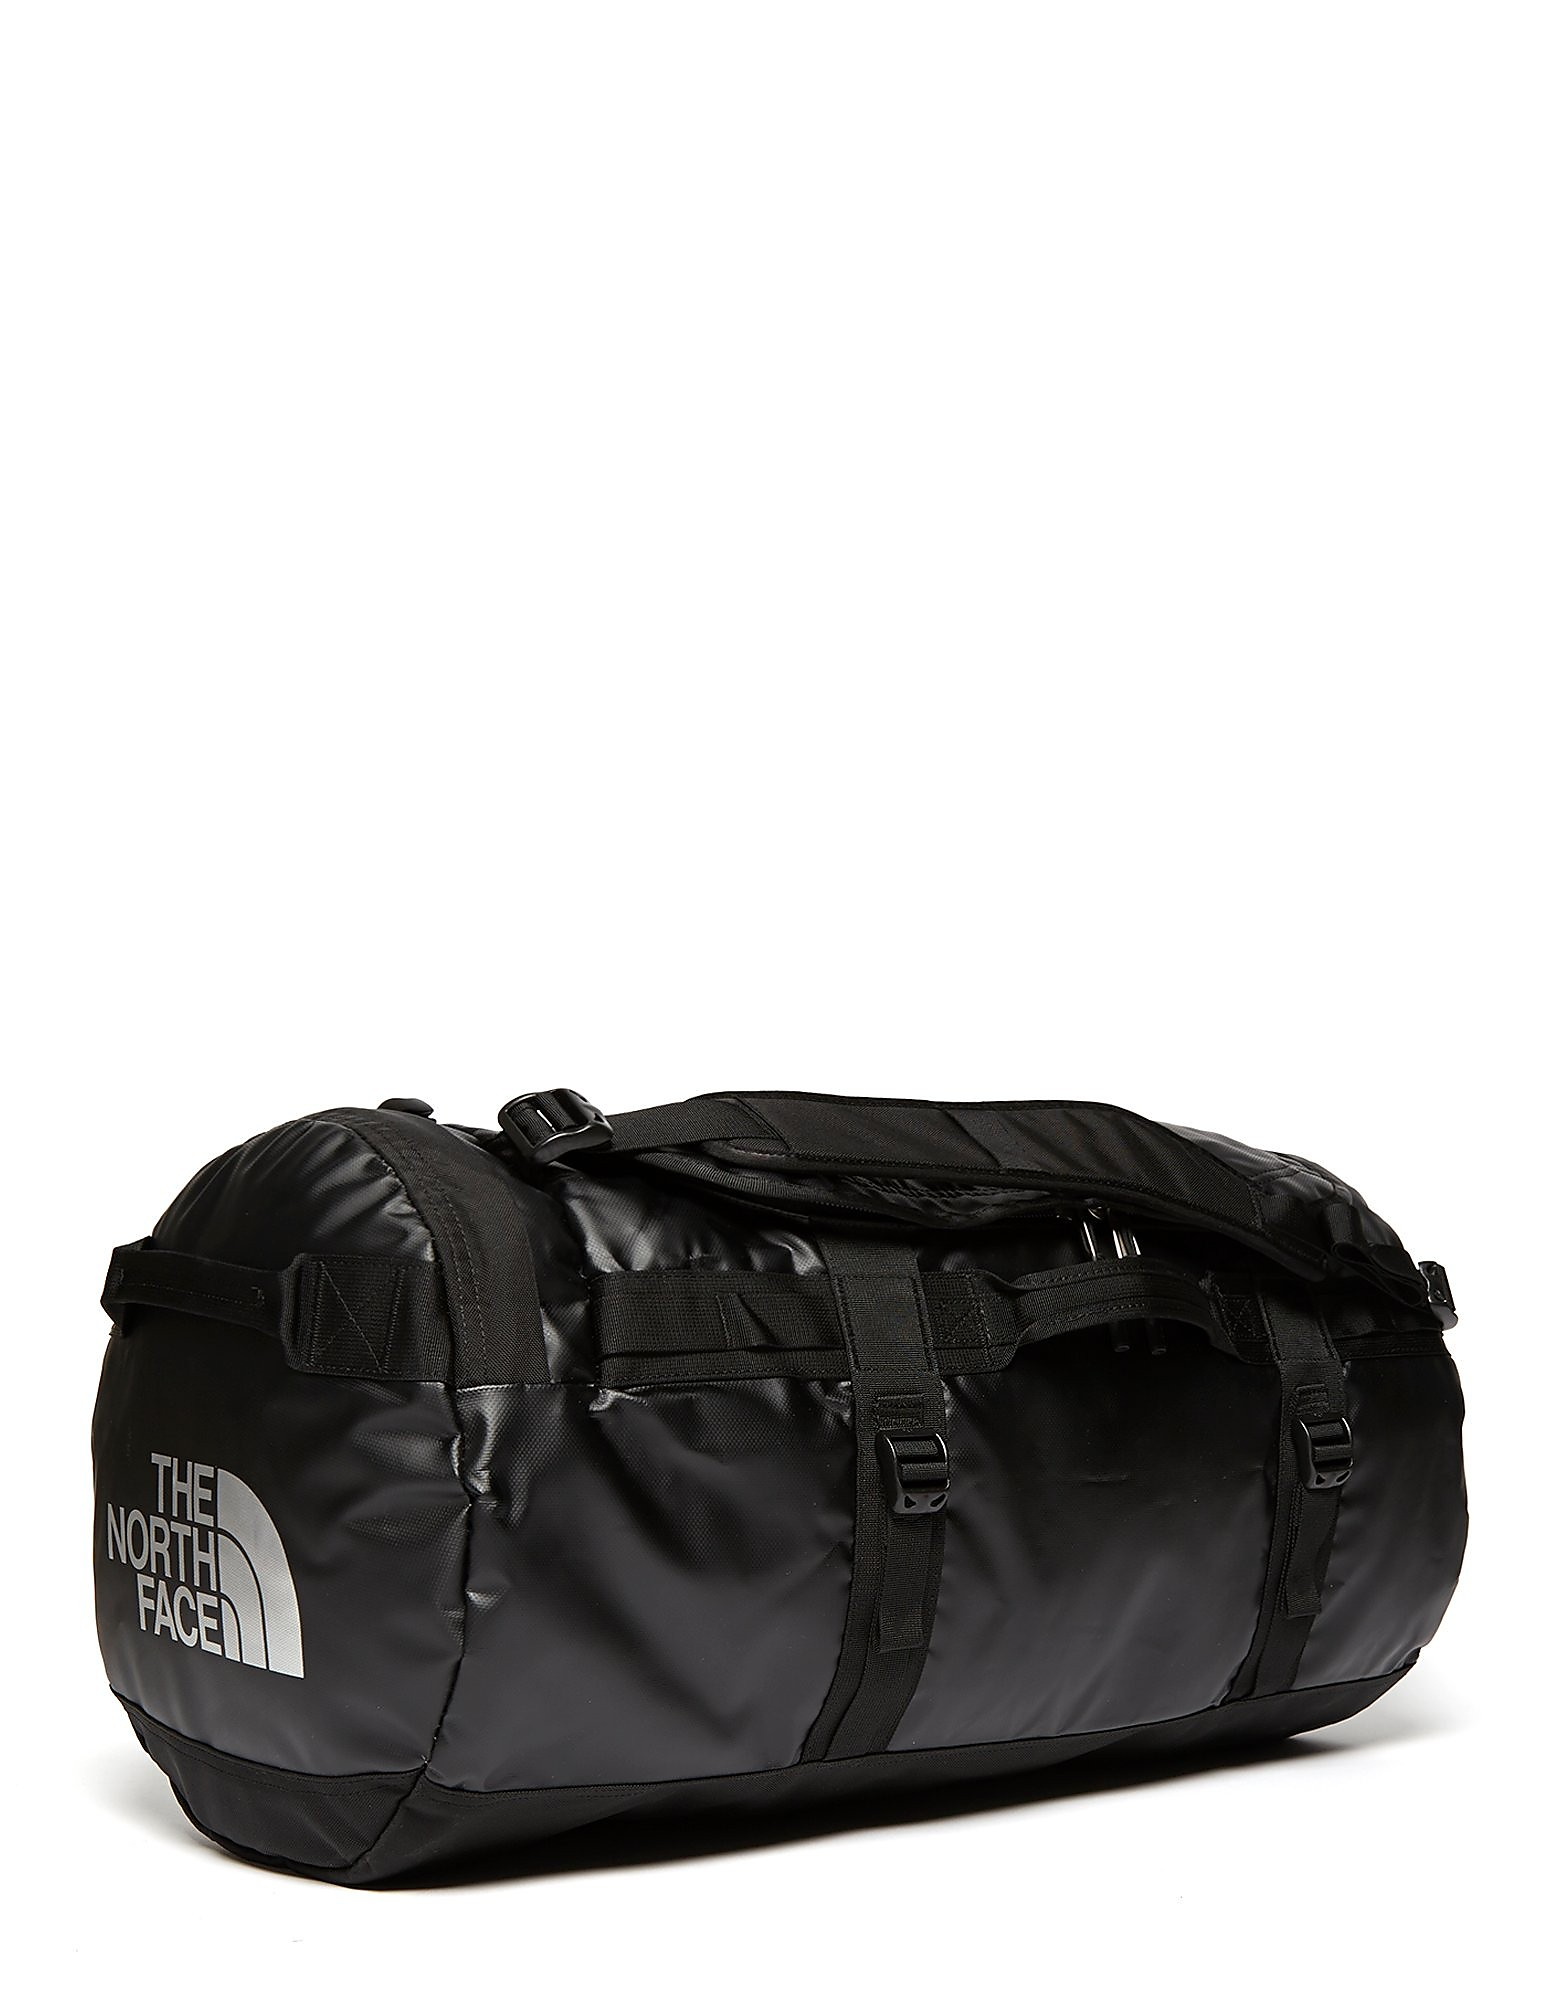 The North Face Mittel Base Camp Duffel Bag